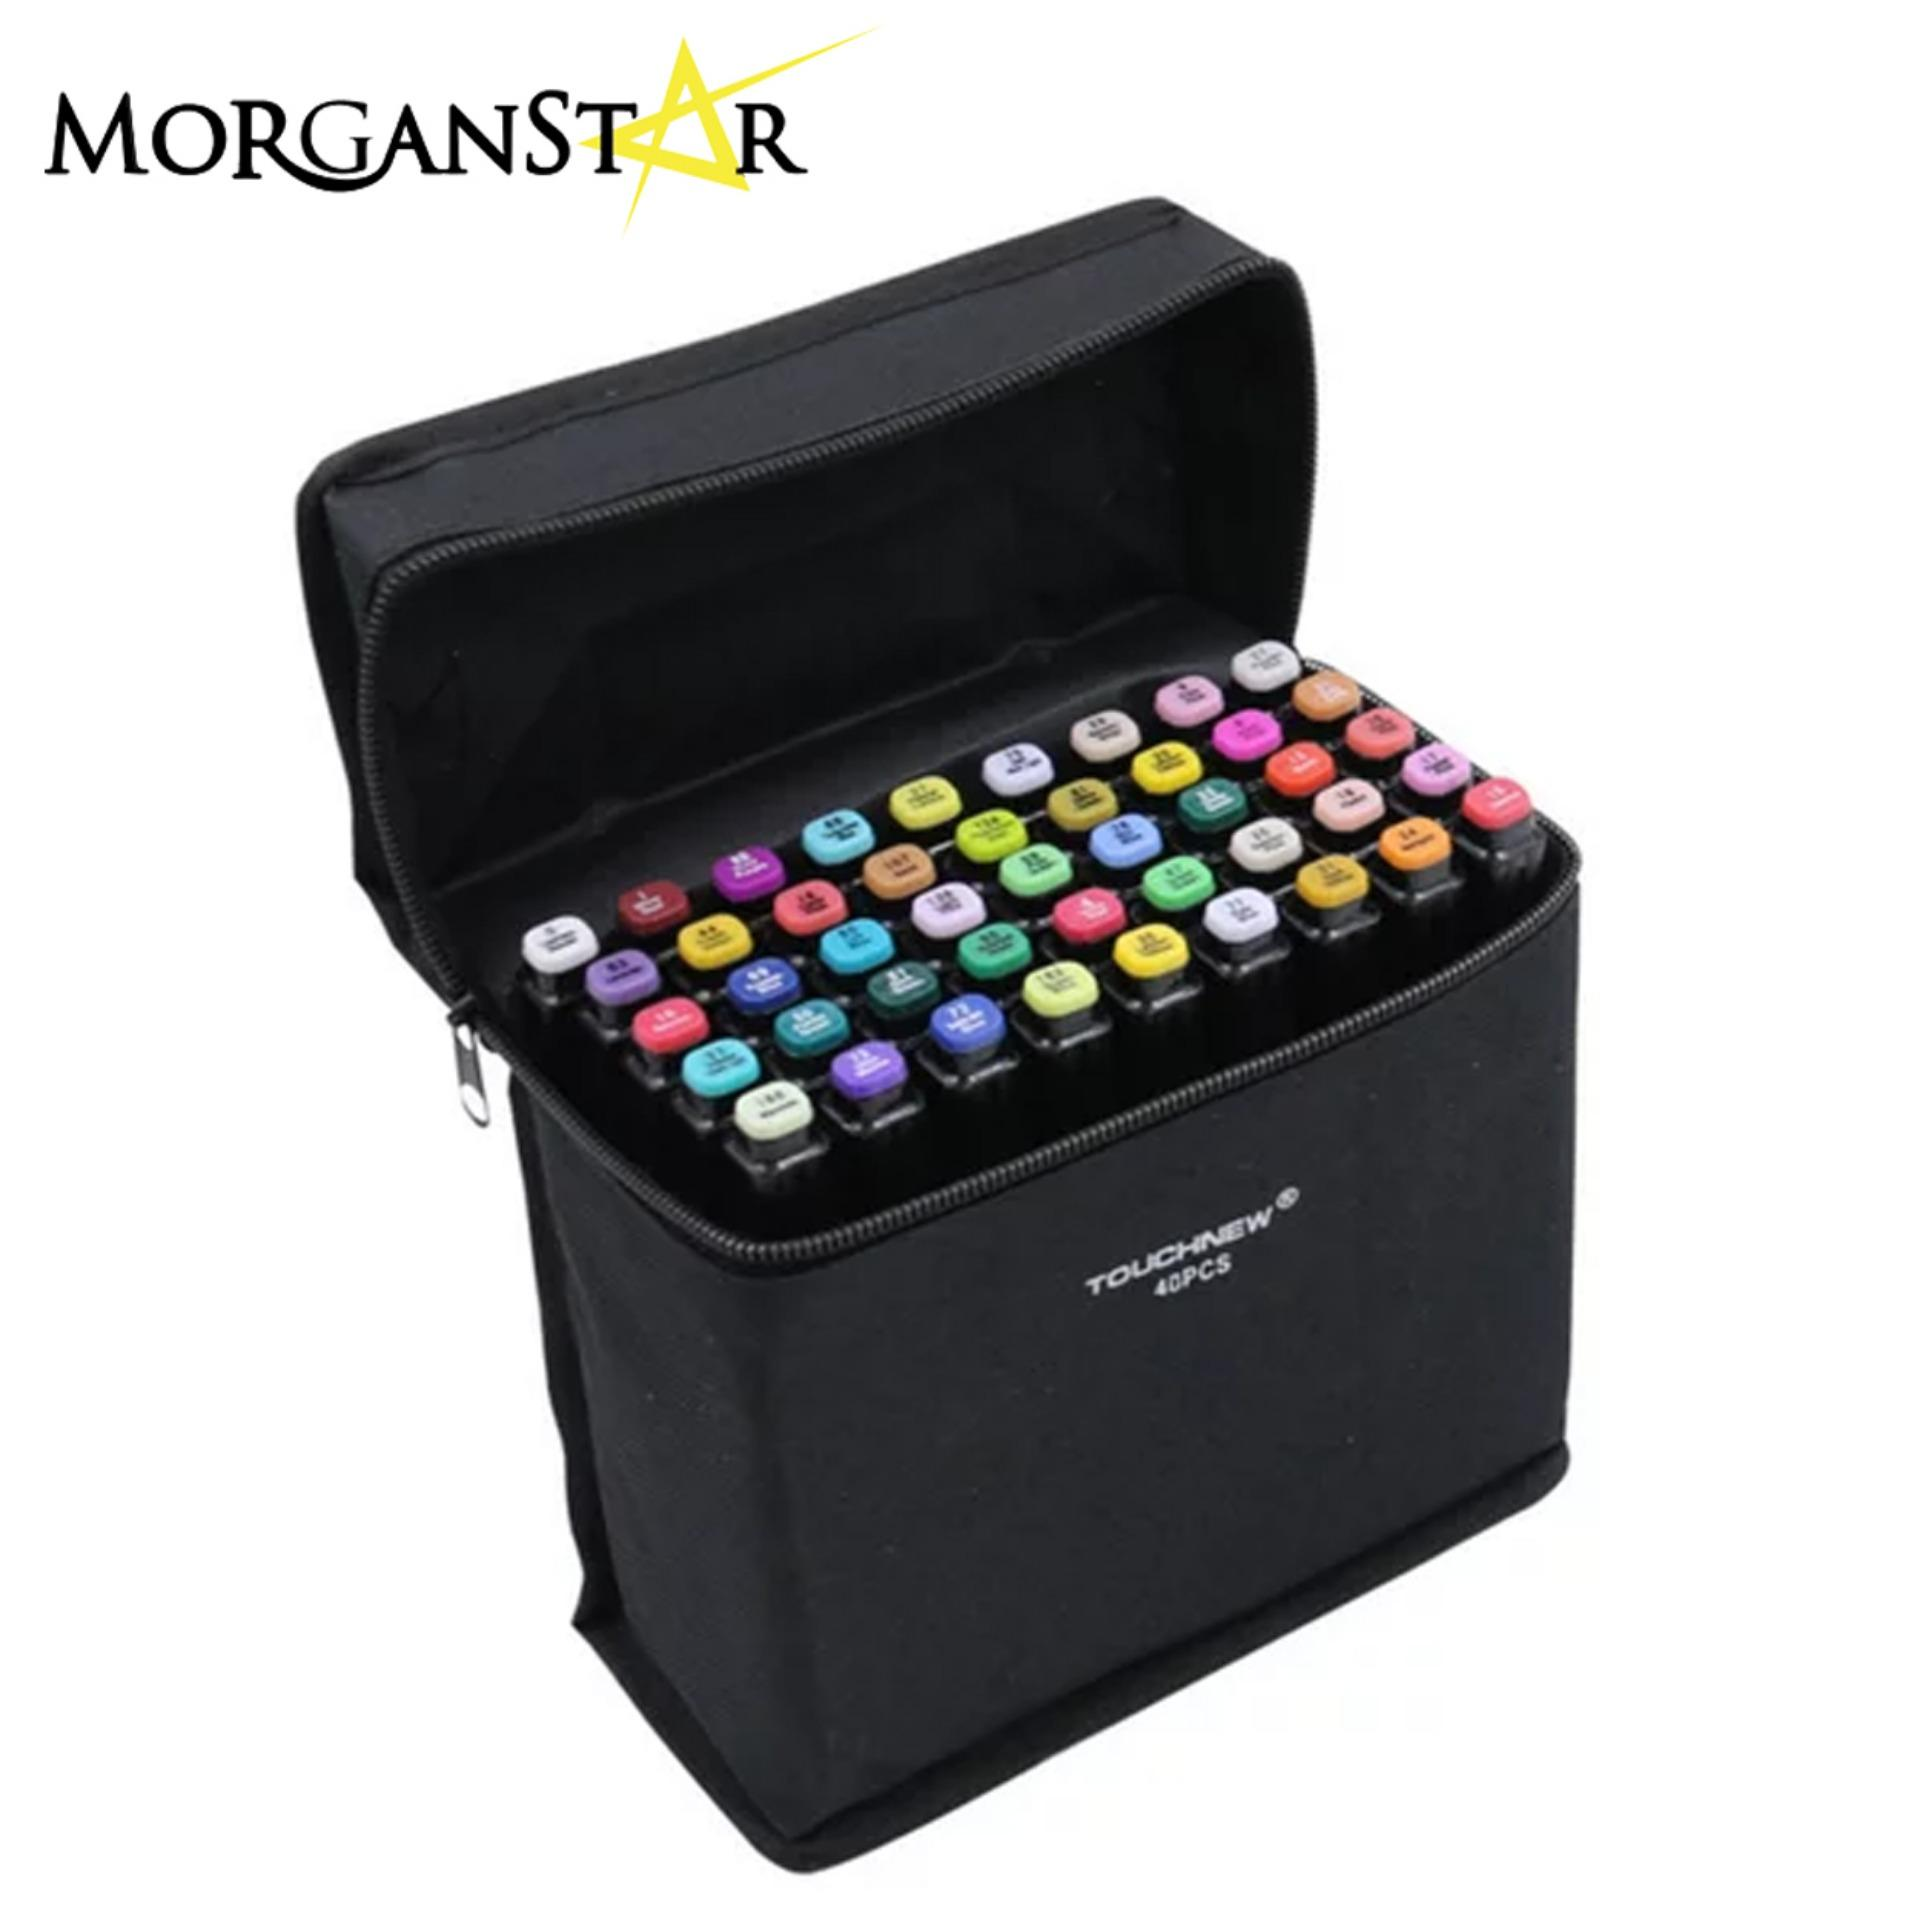 Touchfive / Touch Five Colors Graphic Art Twin Marker Point Tip Pen 36 Colors (black) By Morganstar Marketing.